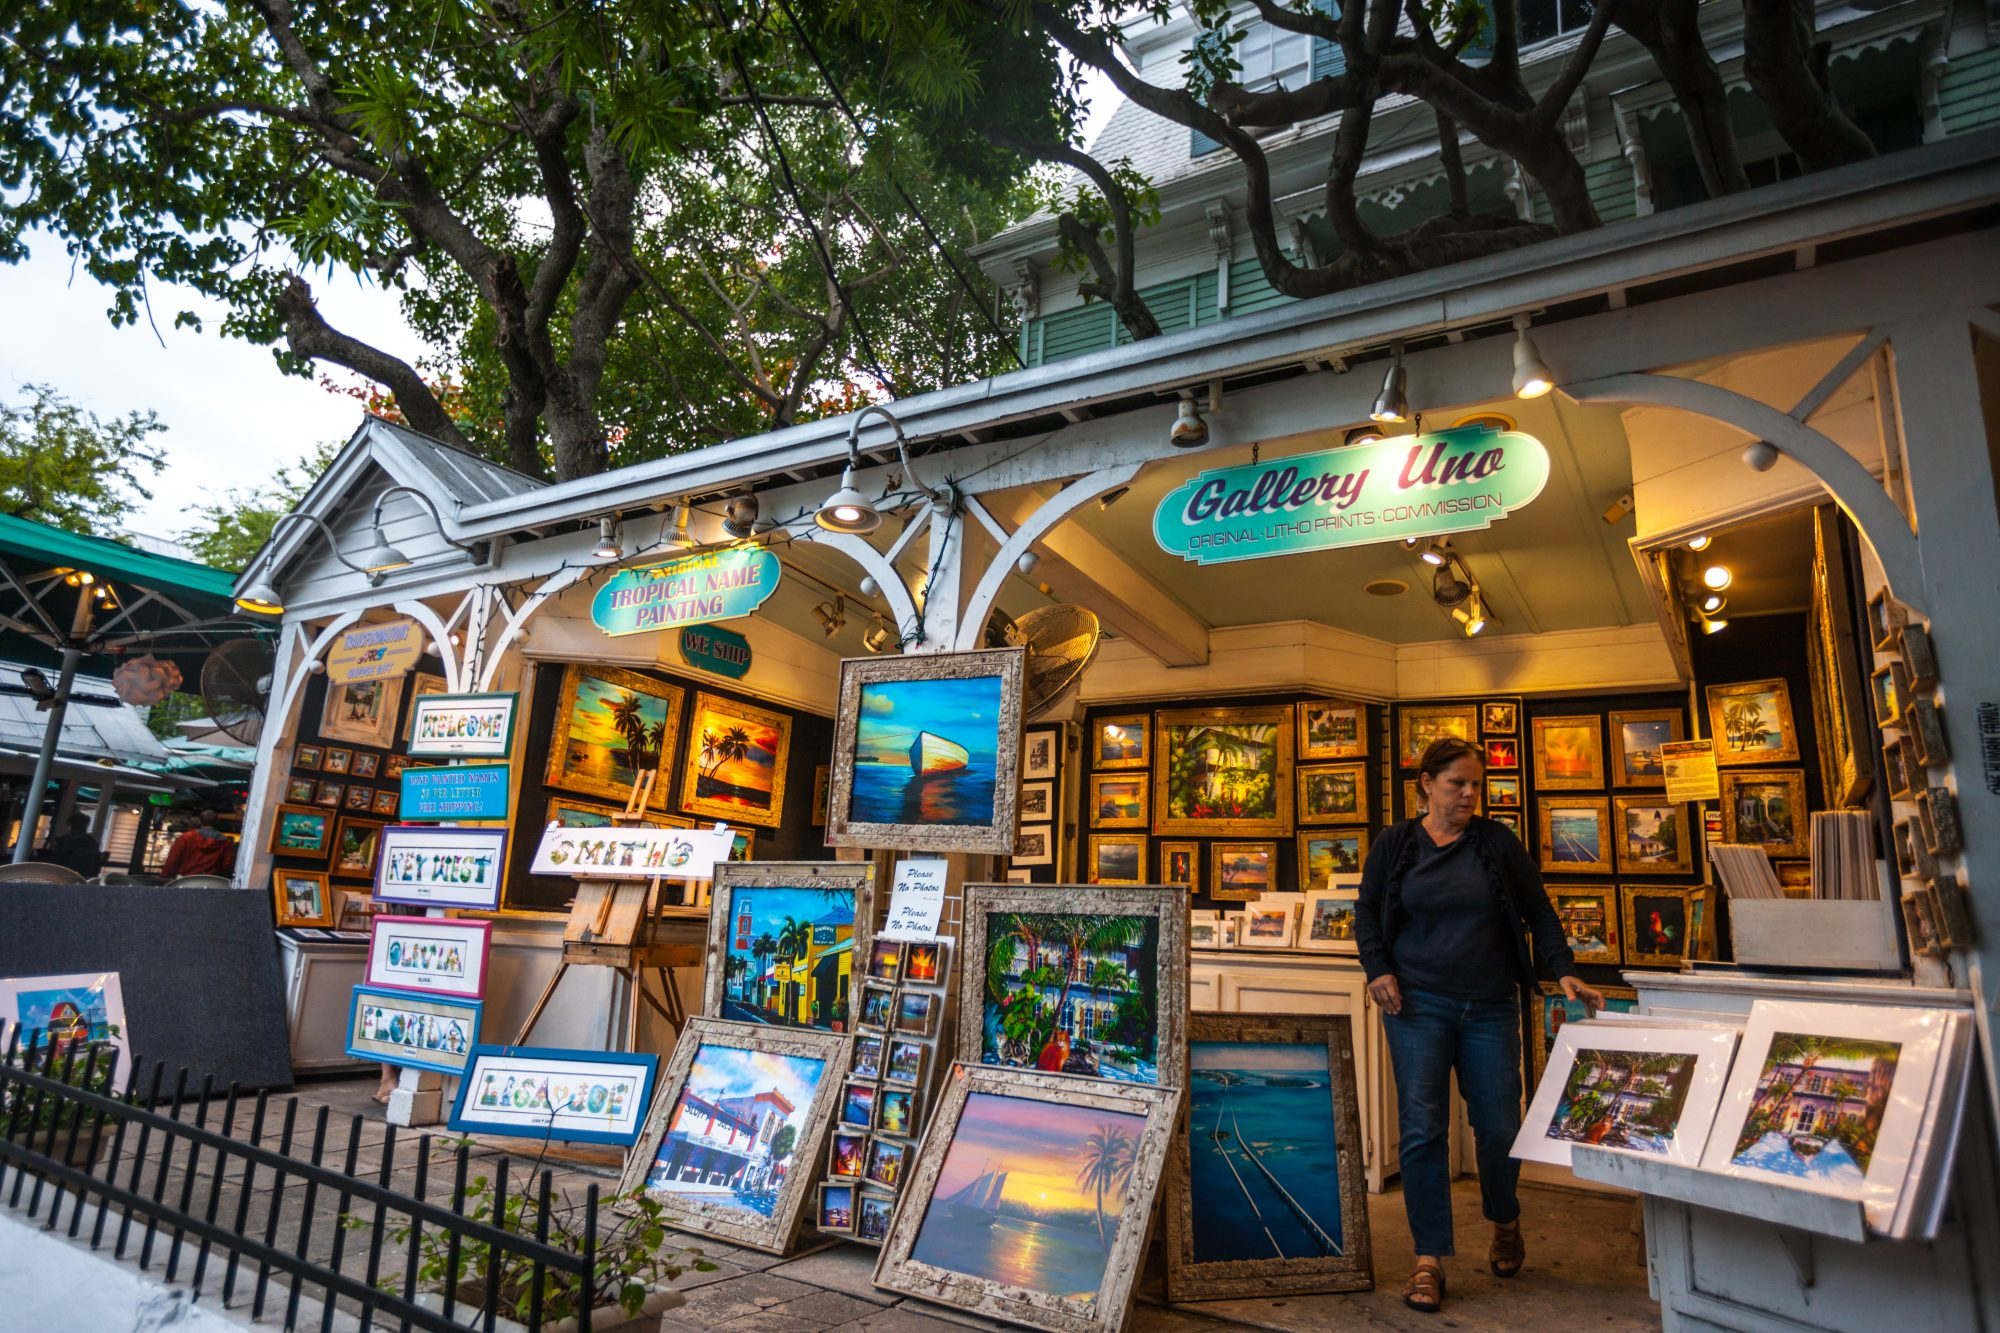 Inspired by the tropical landscape and eccentric local culture, artists have long called Key West home. Browse the many art galleries that line Duval Street, including Gallery Uno, home to works of art by long-term island resident Alberto DeAndrea.